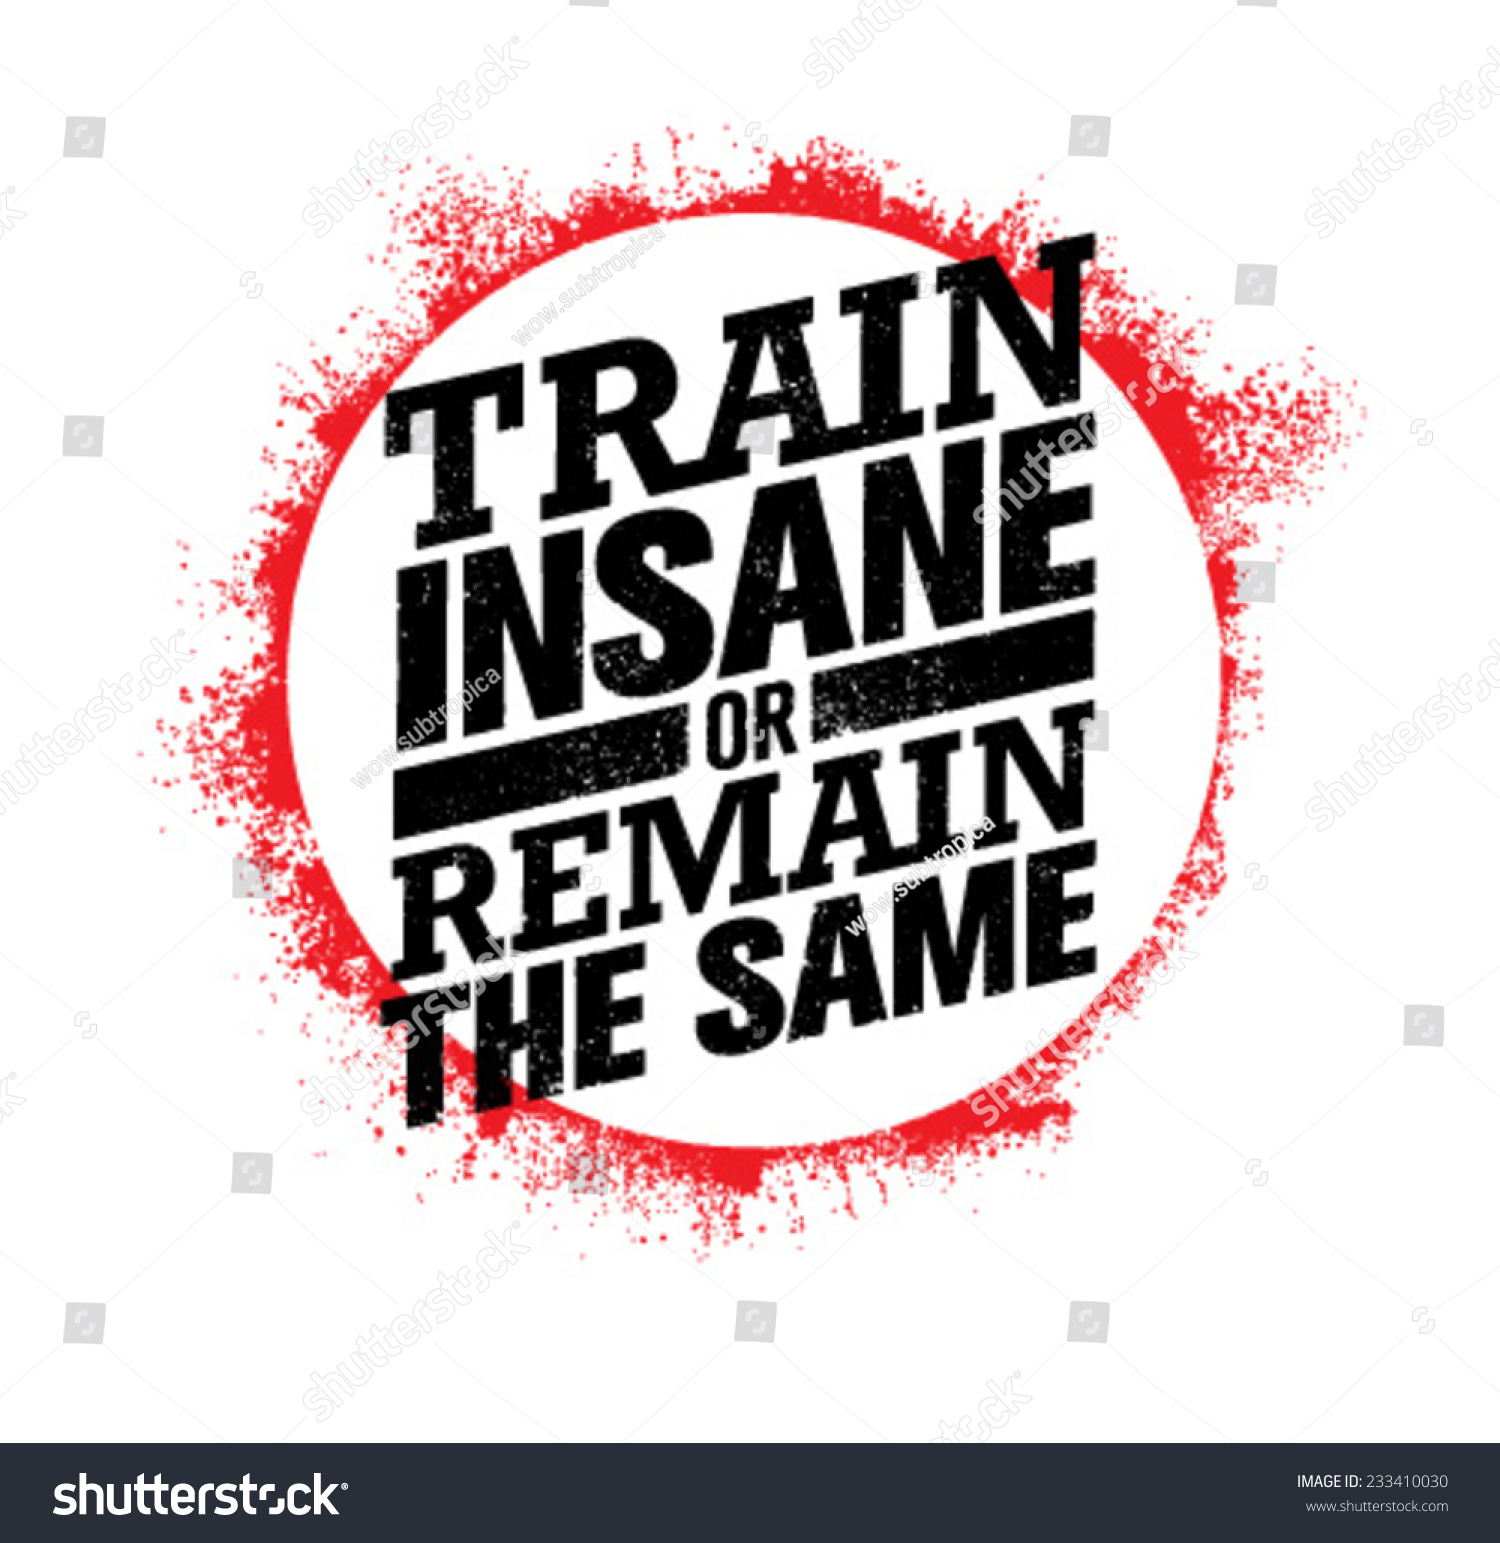 Weight Lifting Wallpaper Iphone Train Insane Remain Same Workout Fitness Stock Vector